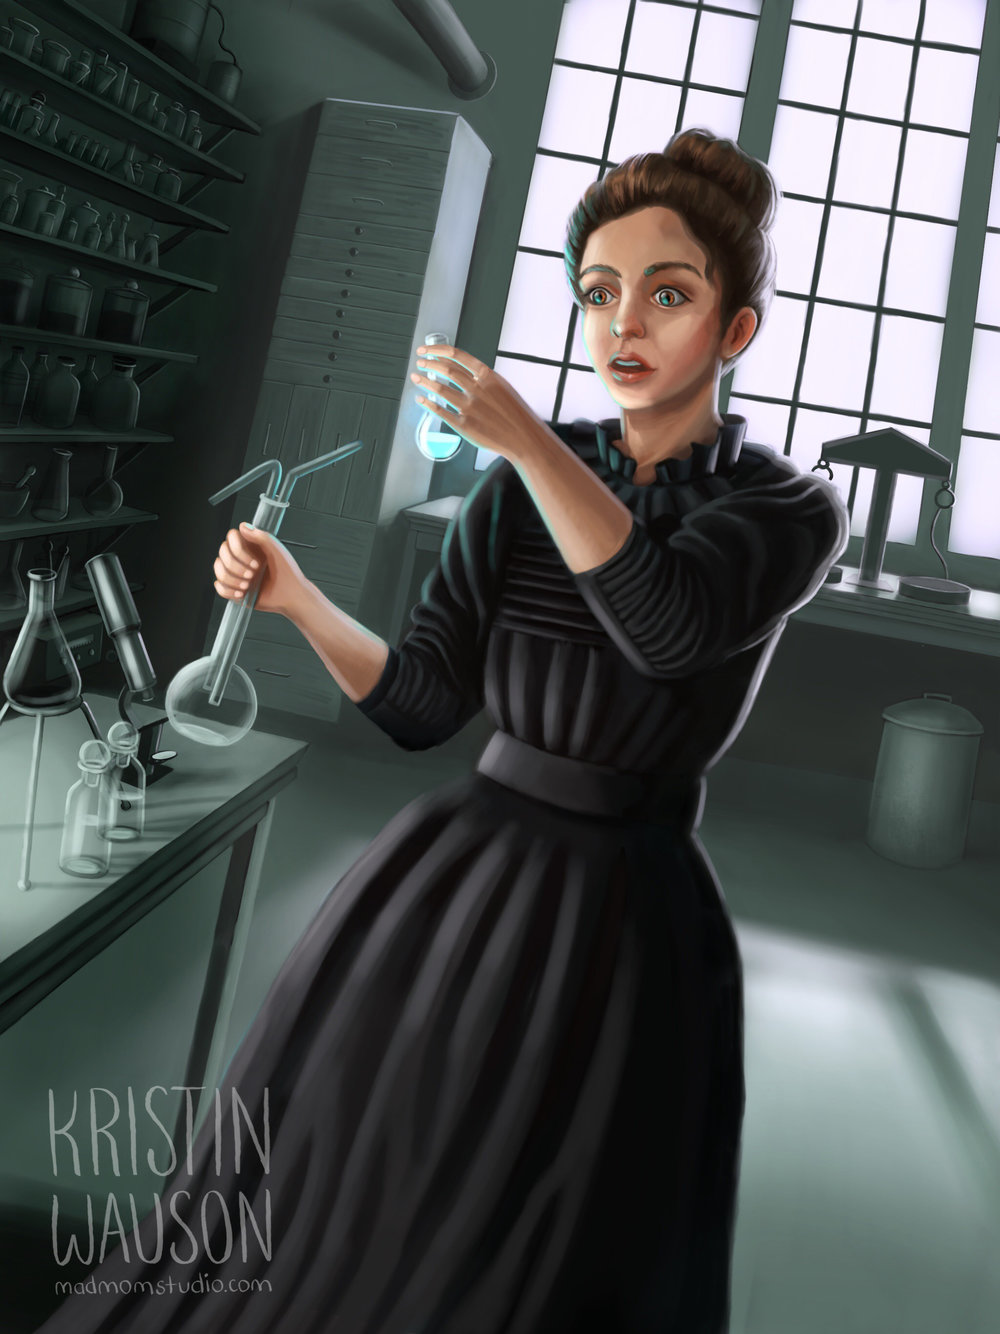 My final illustration of Marie Curie after researching.